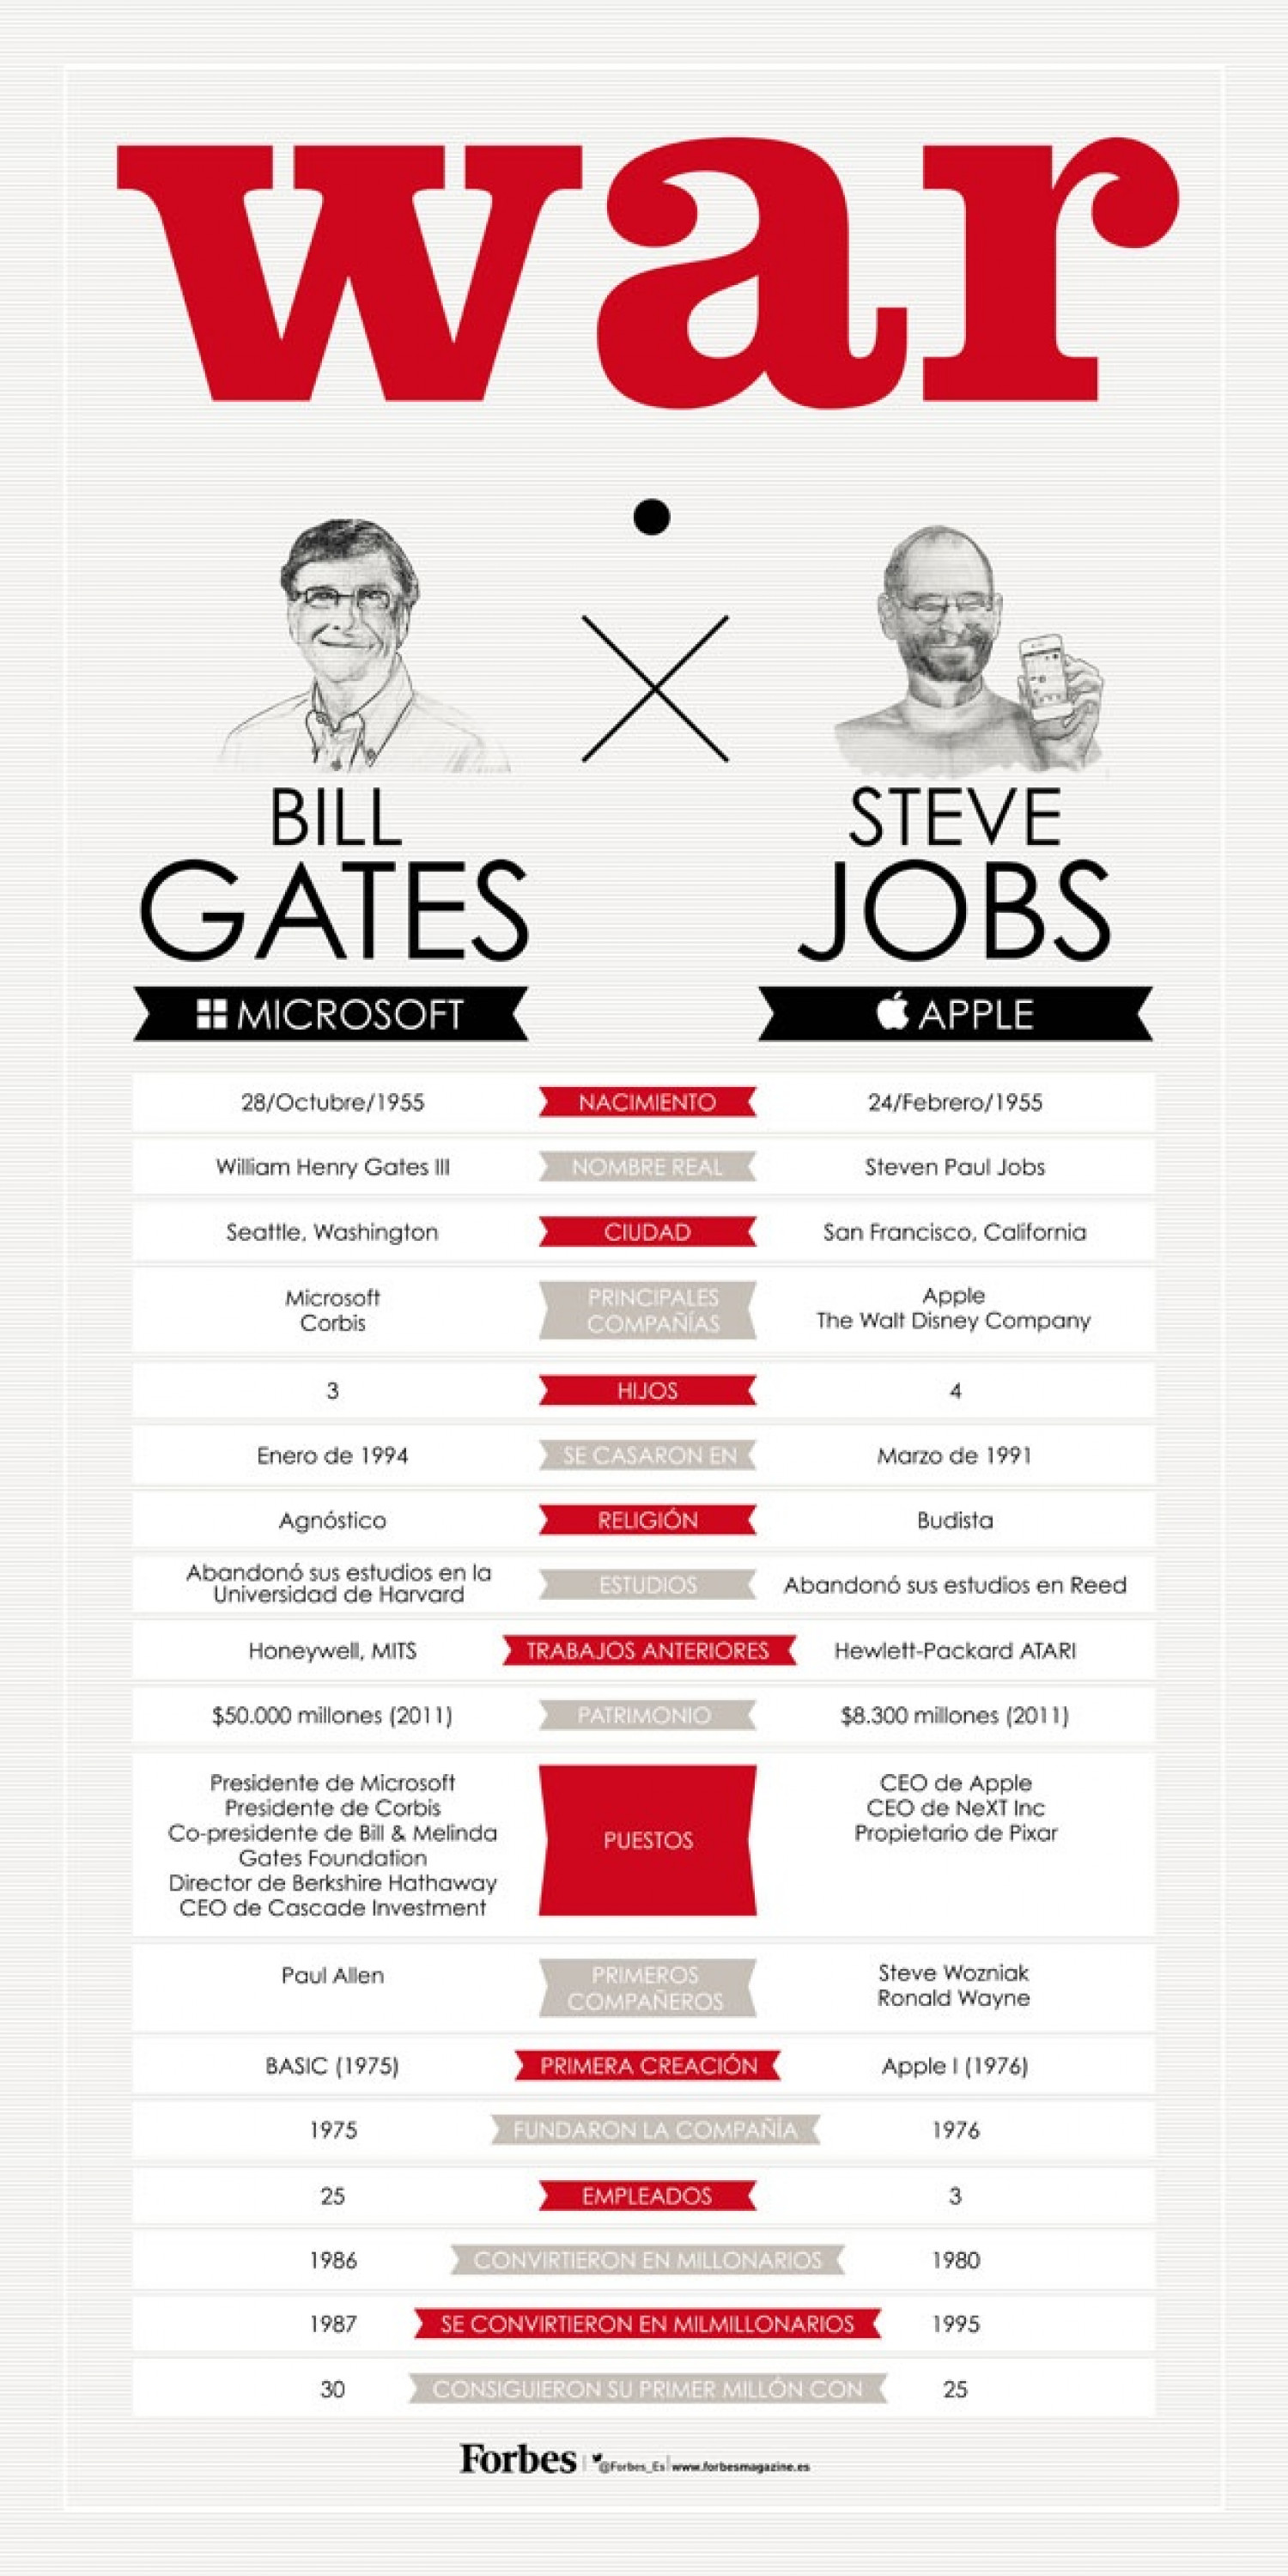 War: Steve Jobs vs Bill Gates Infographic